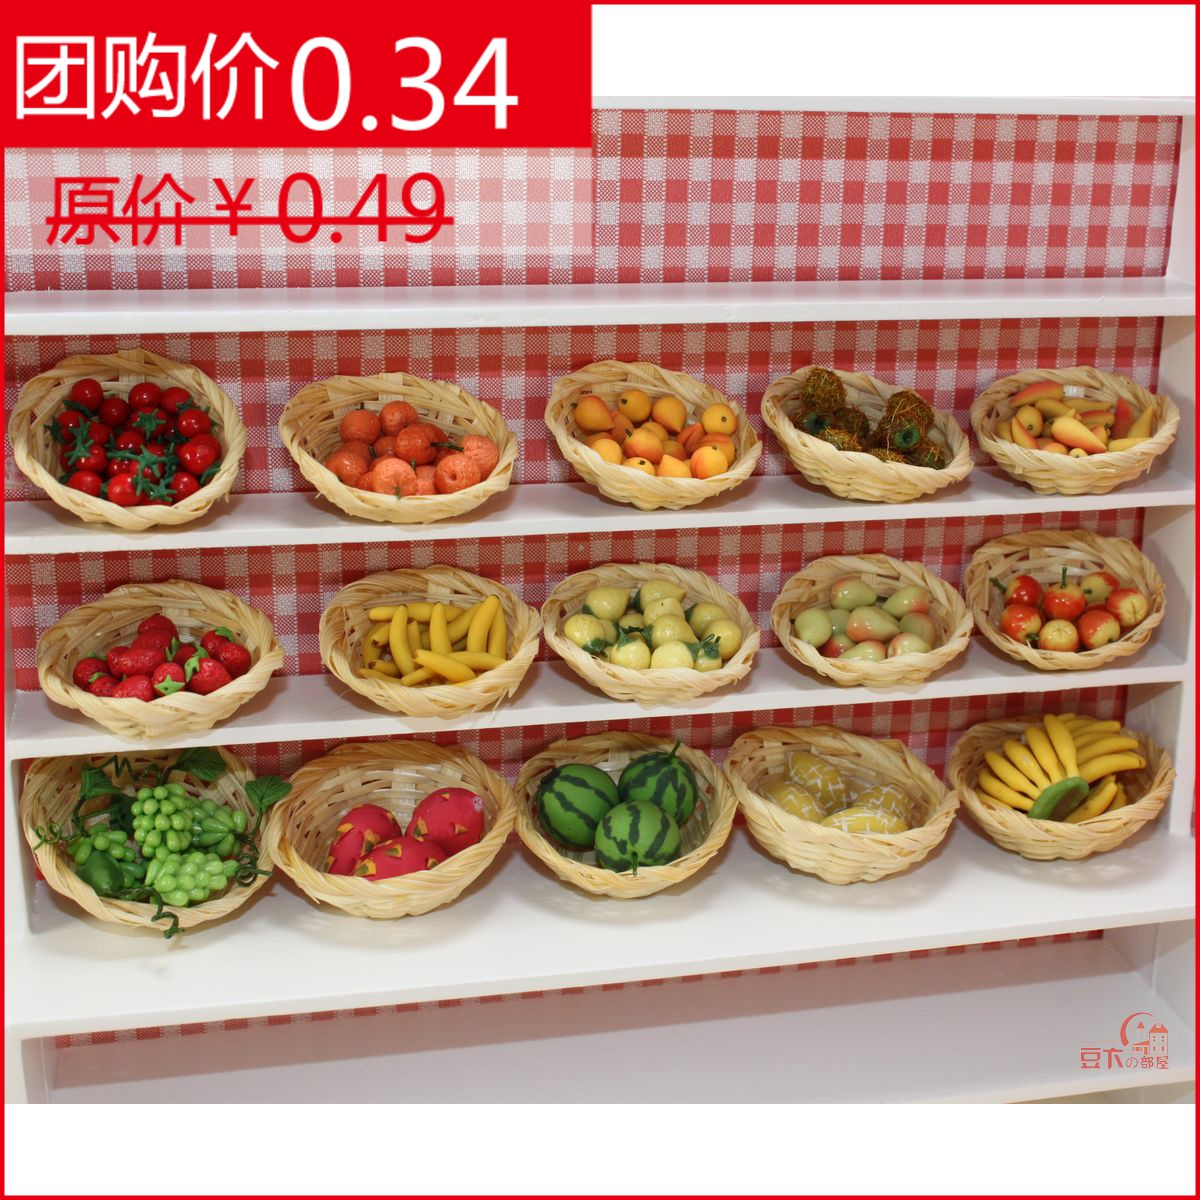 1 12 fruit dollhouse doll house kitchen furniture accessories miniature simulation toy for barbie bdj blythe jpg